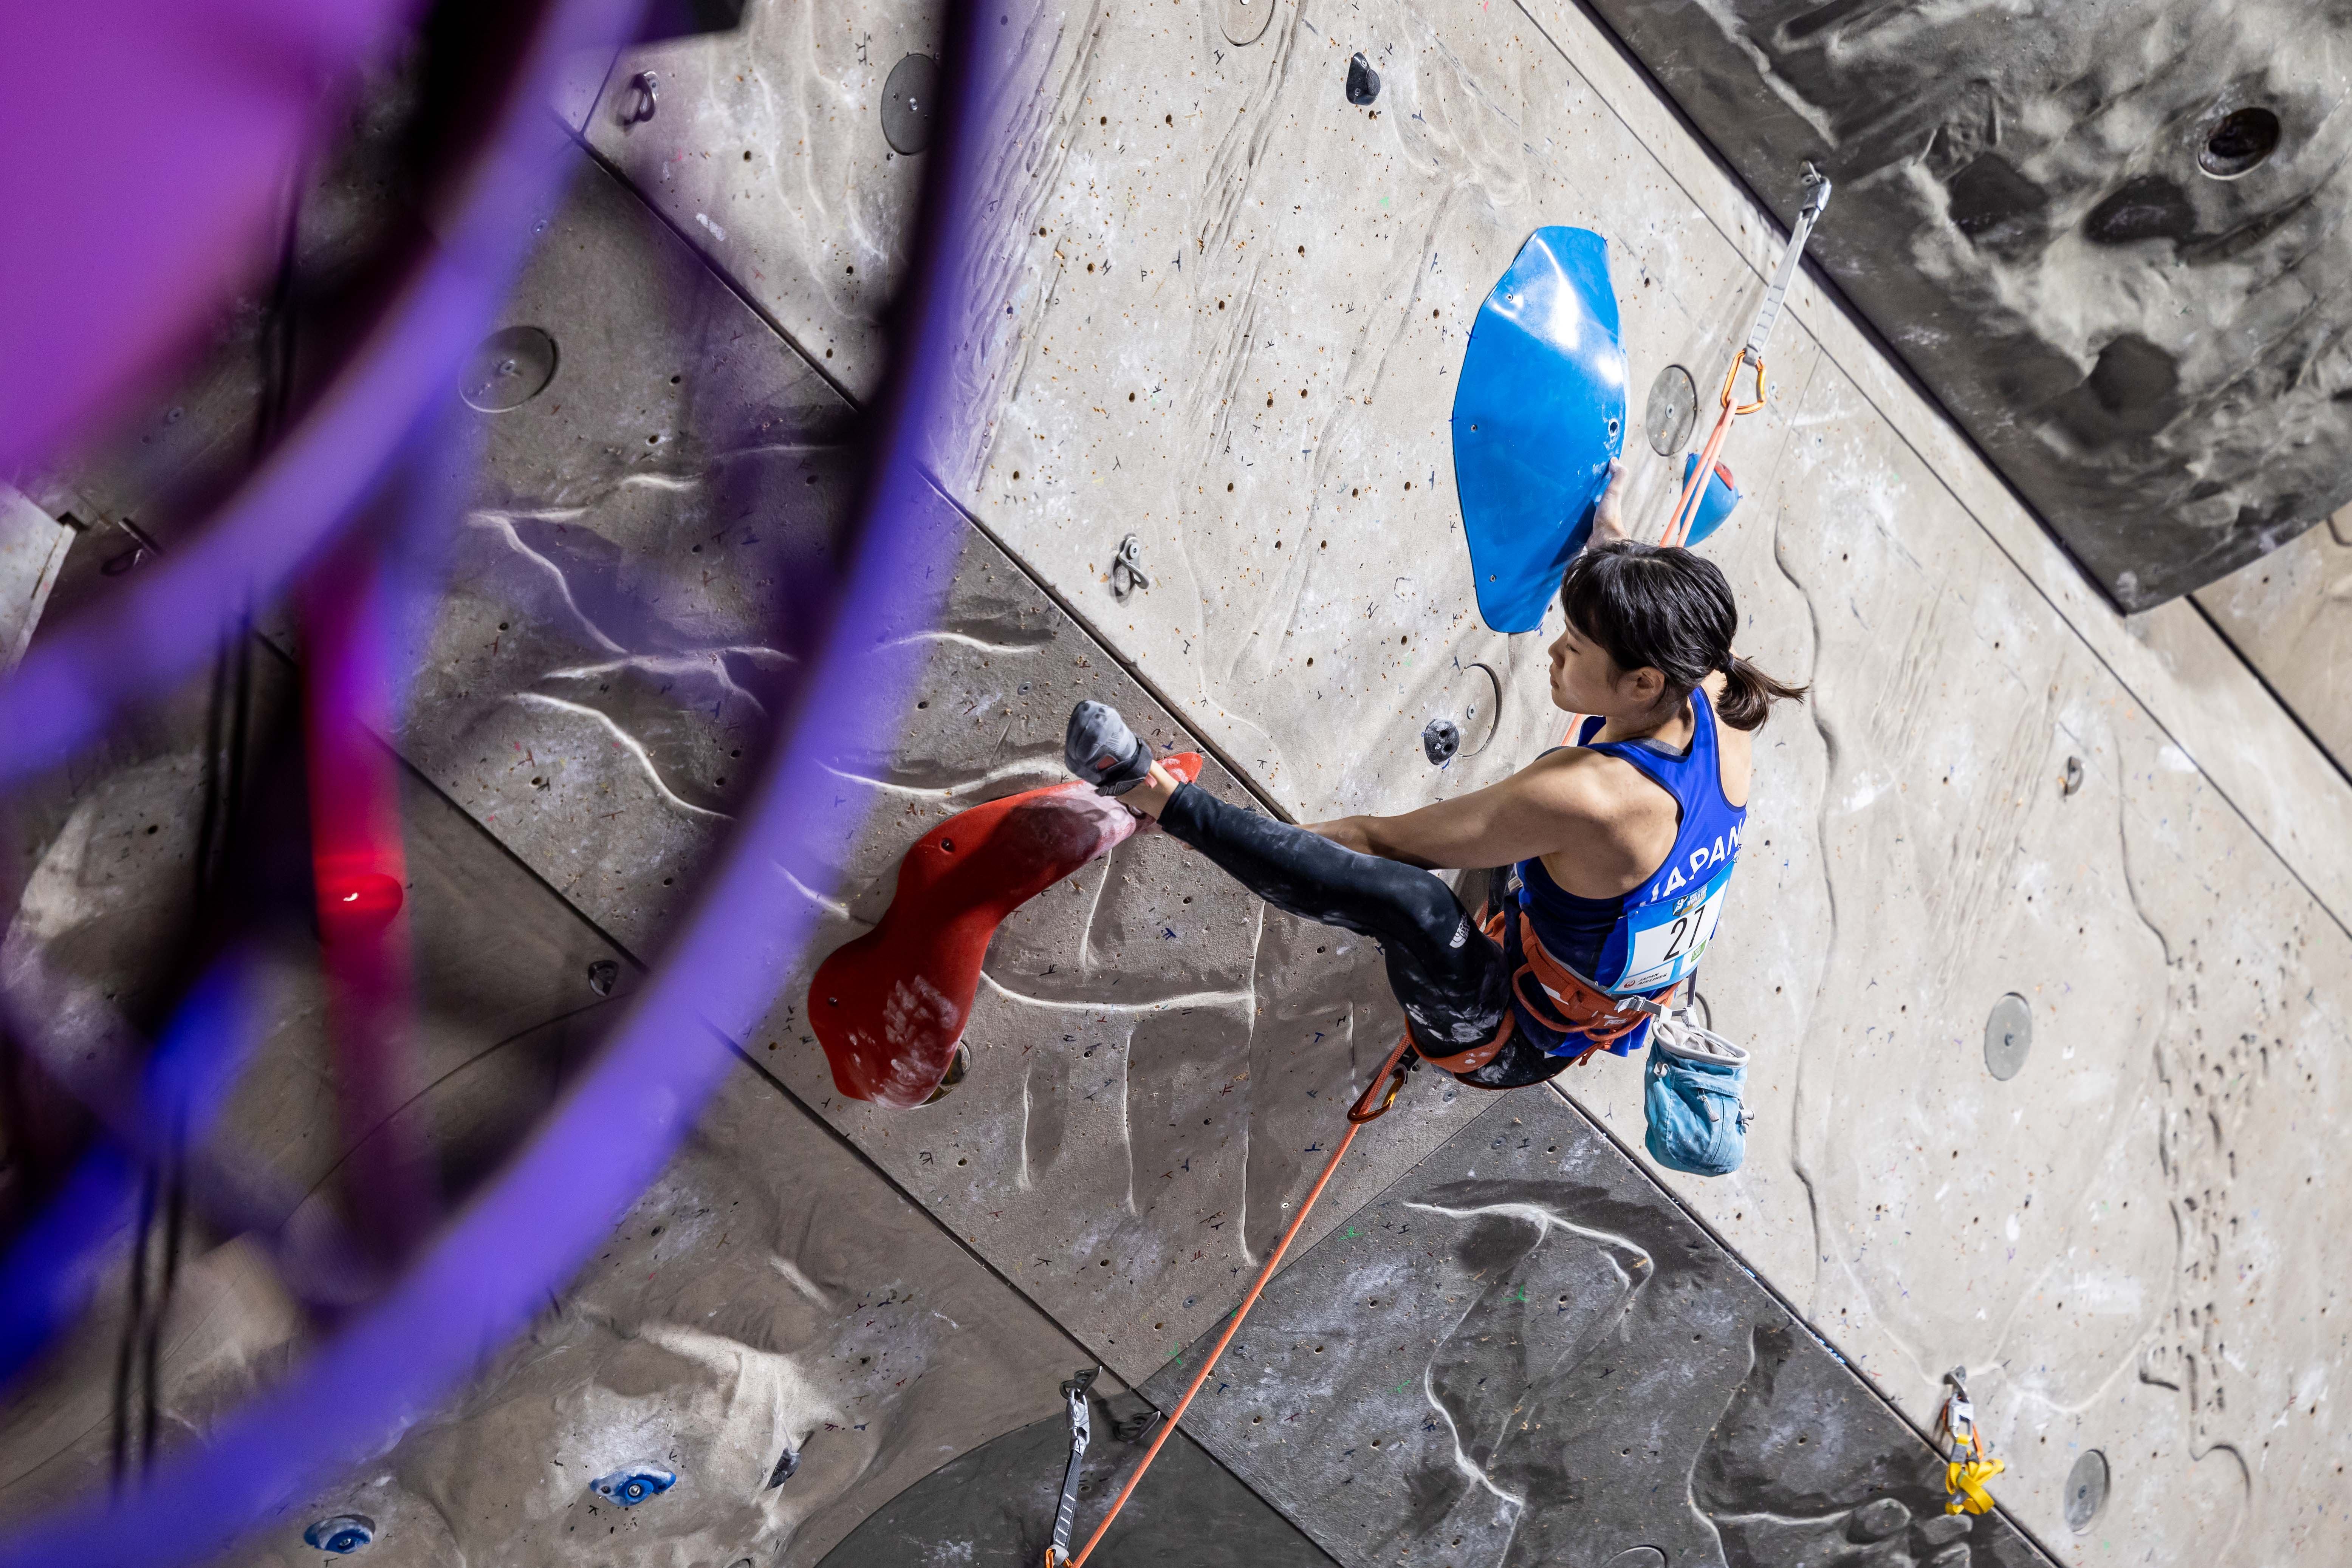 210903 IFSC News Kotake Seo Rogora share the top position in the womens Lead qualification round